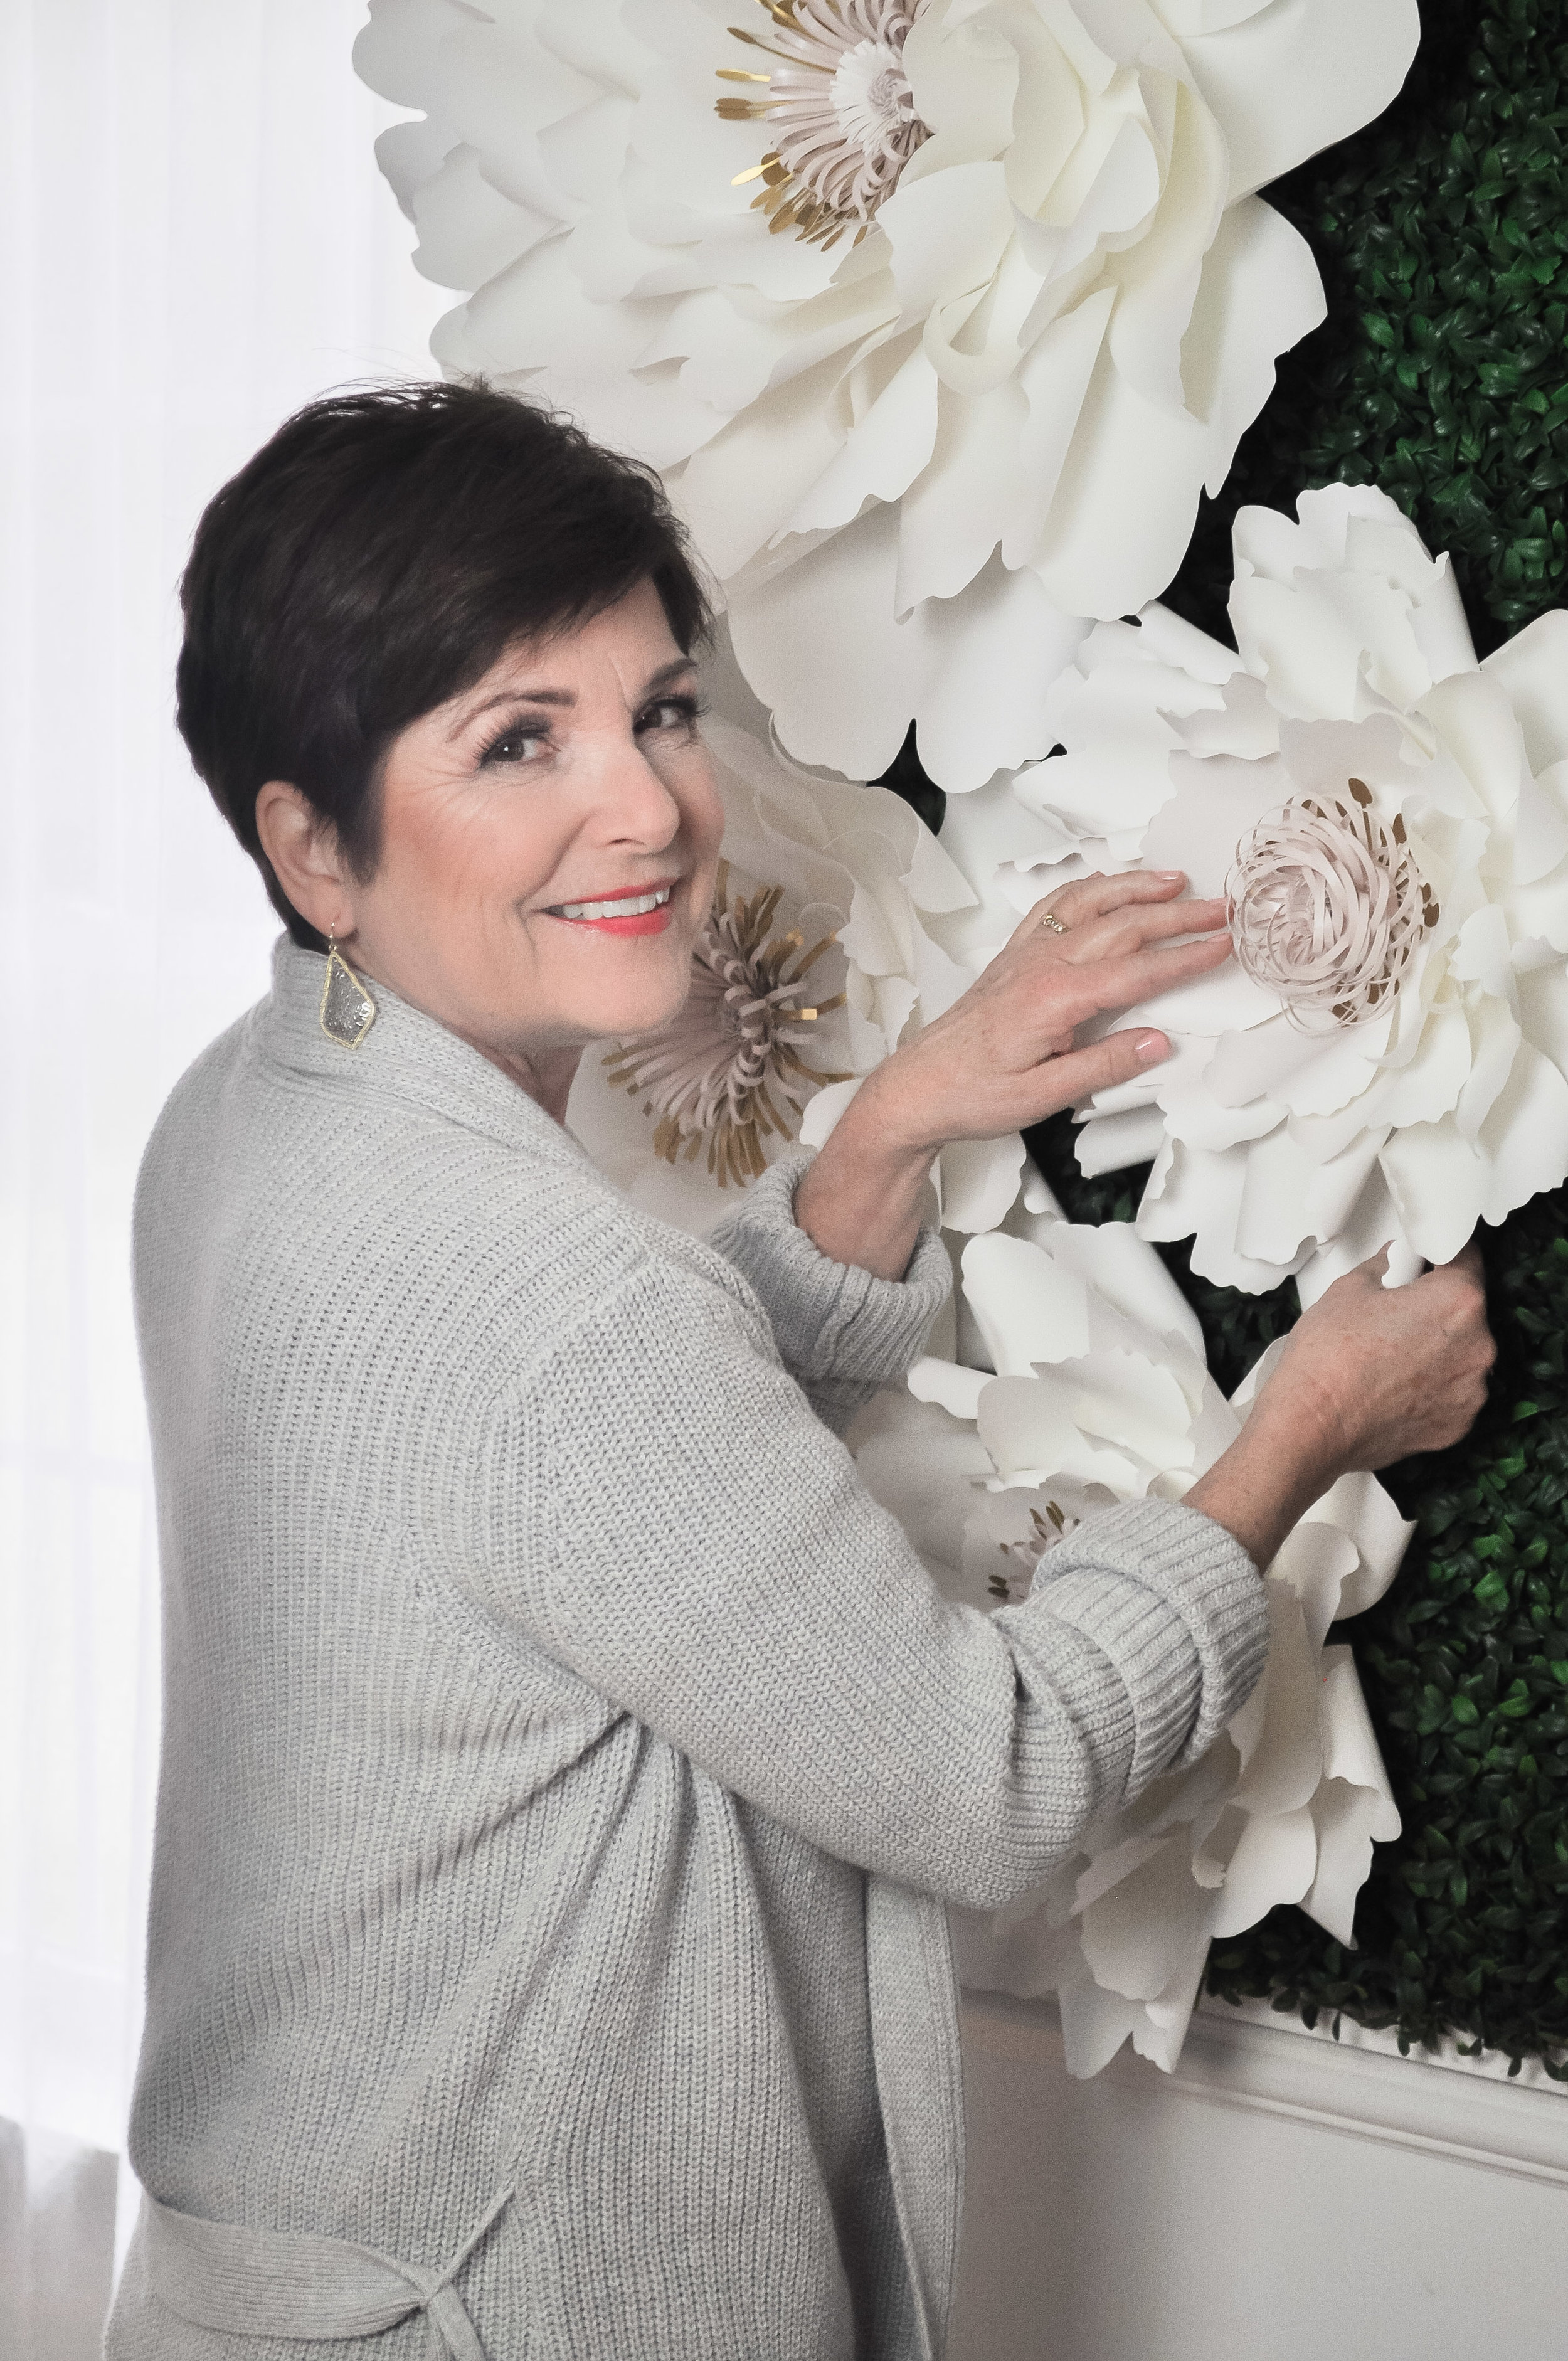 Linda Dodge - Linda Dodge was born and raised in Ontario, Canada. She is the designer and creative entrepreneur behind Linda Grace Paper Florist located in McKinney, TX. Her boutique specializes in elegant paper flower arrangements and full-wall flower backdrops for special events and weddings.